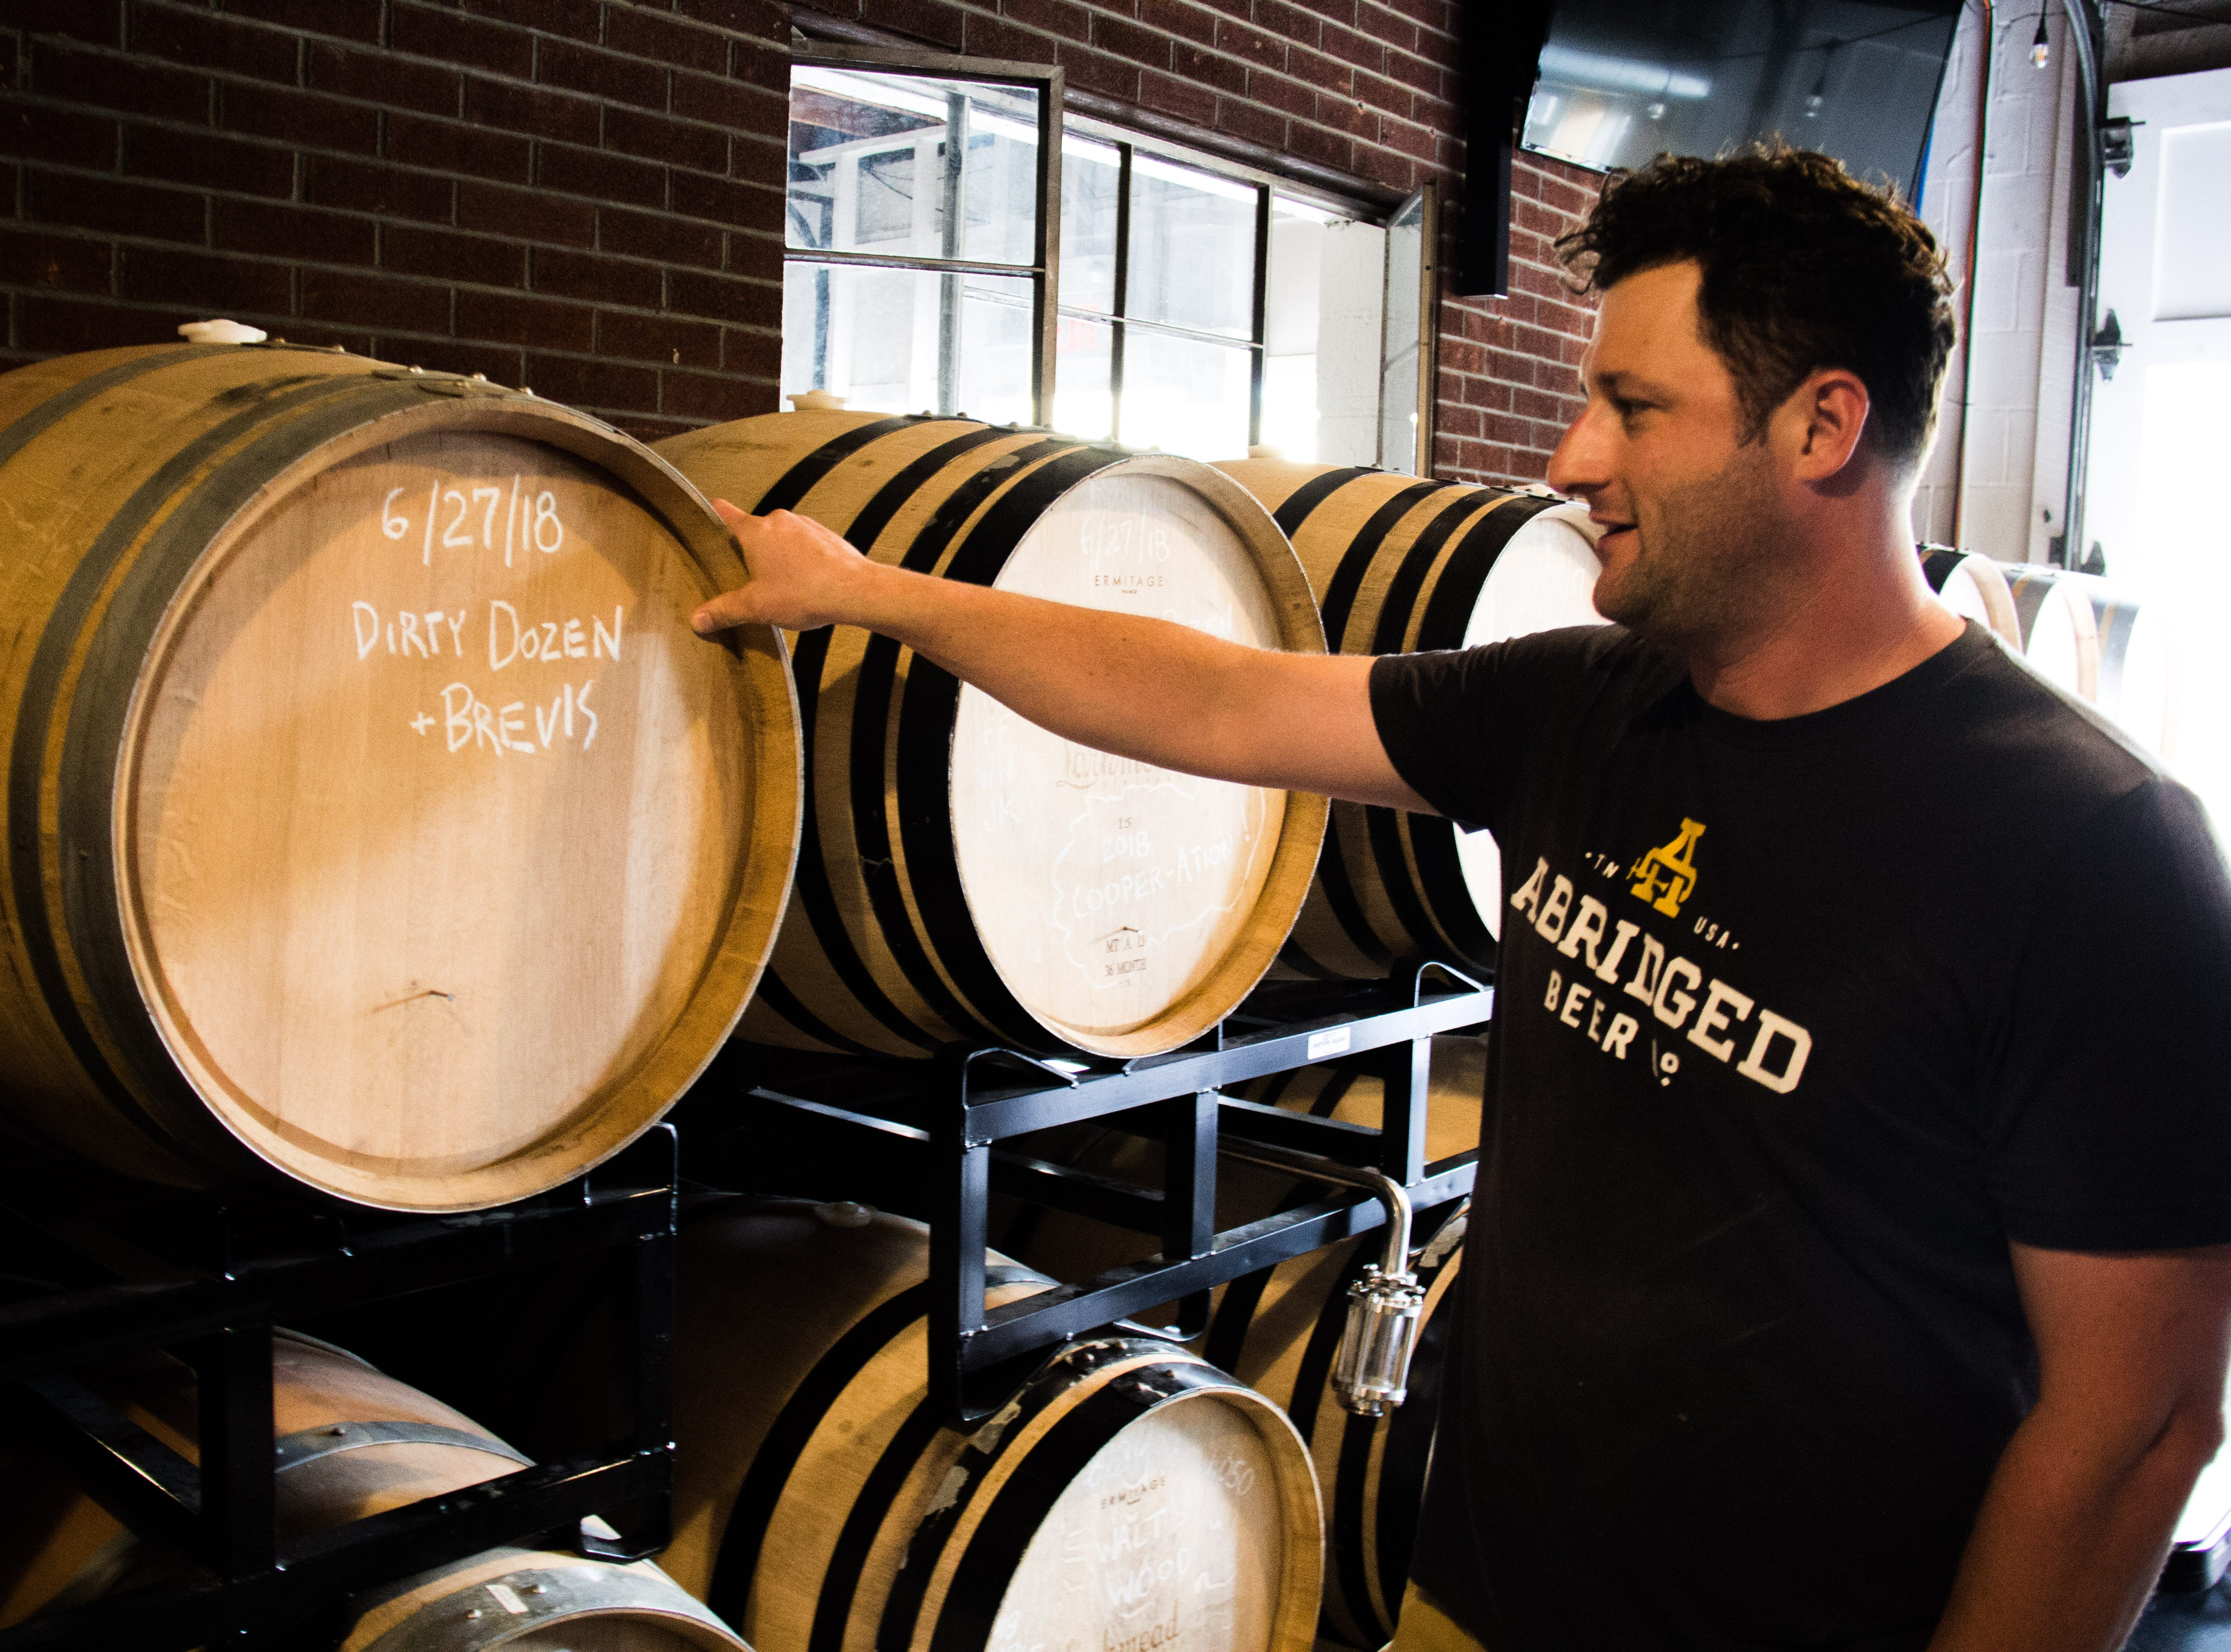 Abridged Beer Co. founder Jesse Bowers looks at a barrel of sour beer Oct. 10, 2018.